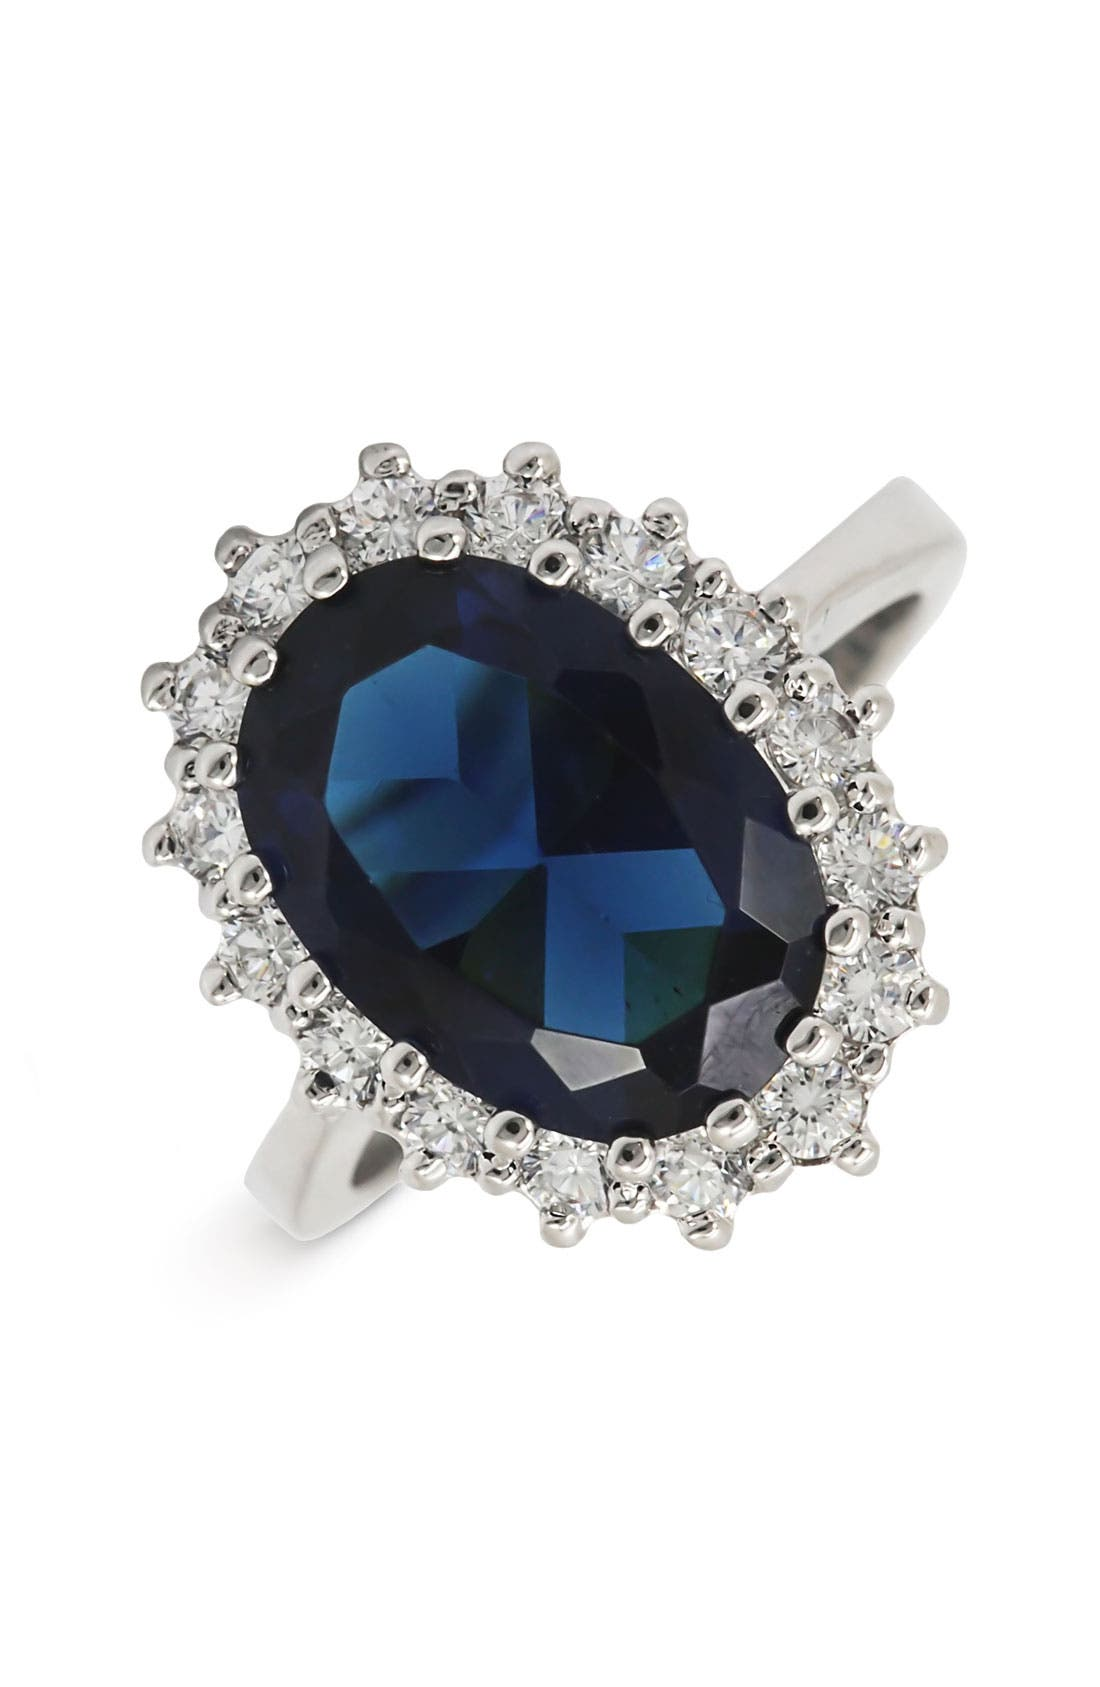 Main Image - Ariella Collection Blue Stone & Cubic Zirconia Oval Ring